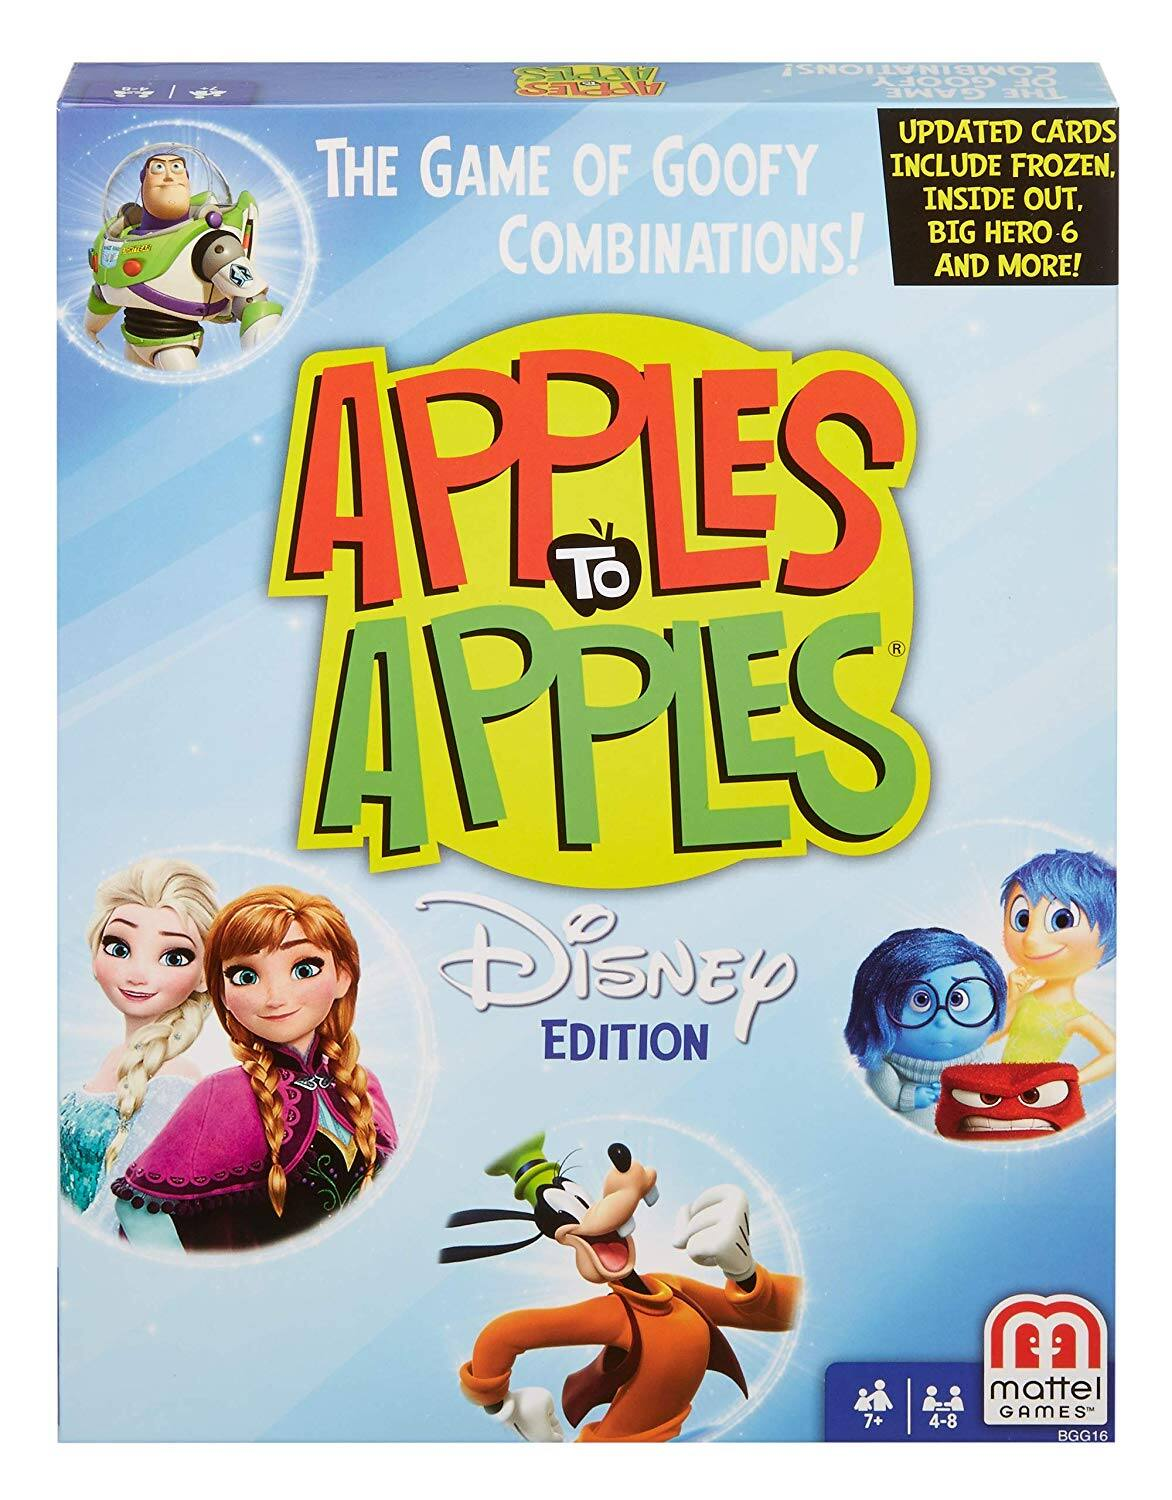 Disney Apples to Apples - The Game of Goofy Comparisons! $9.9